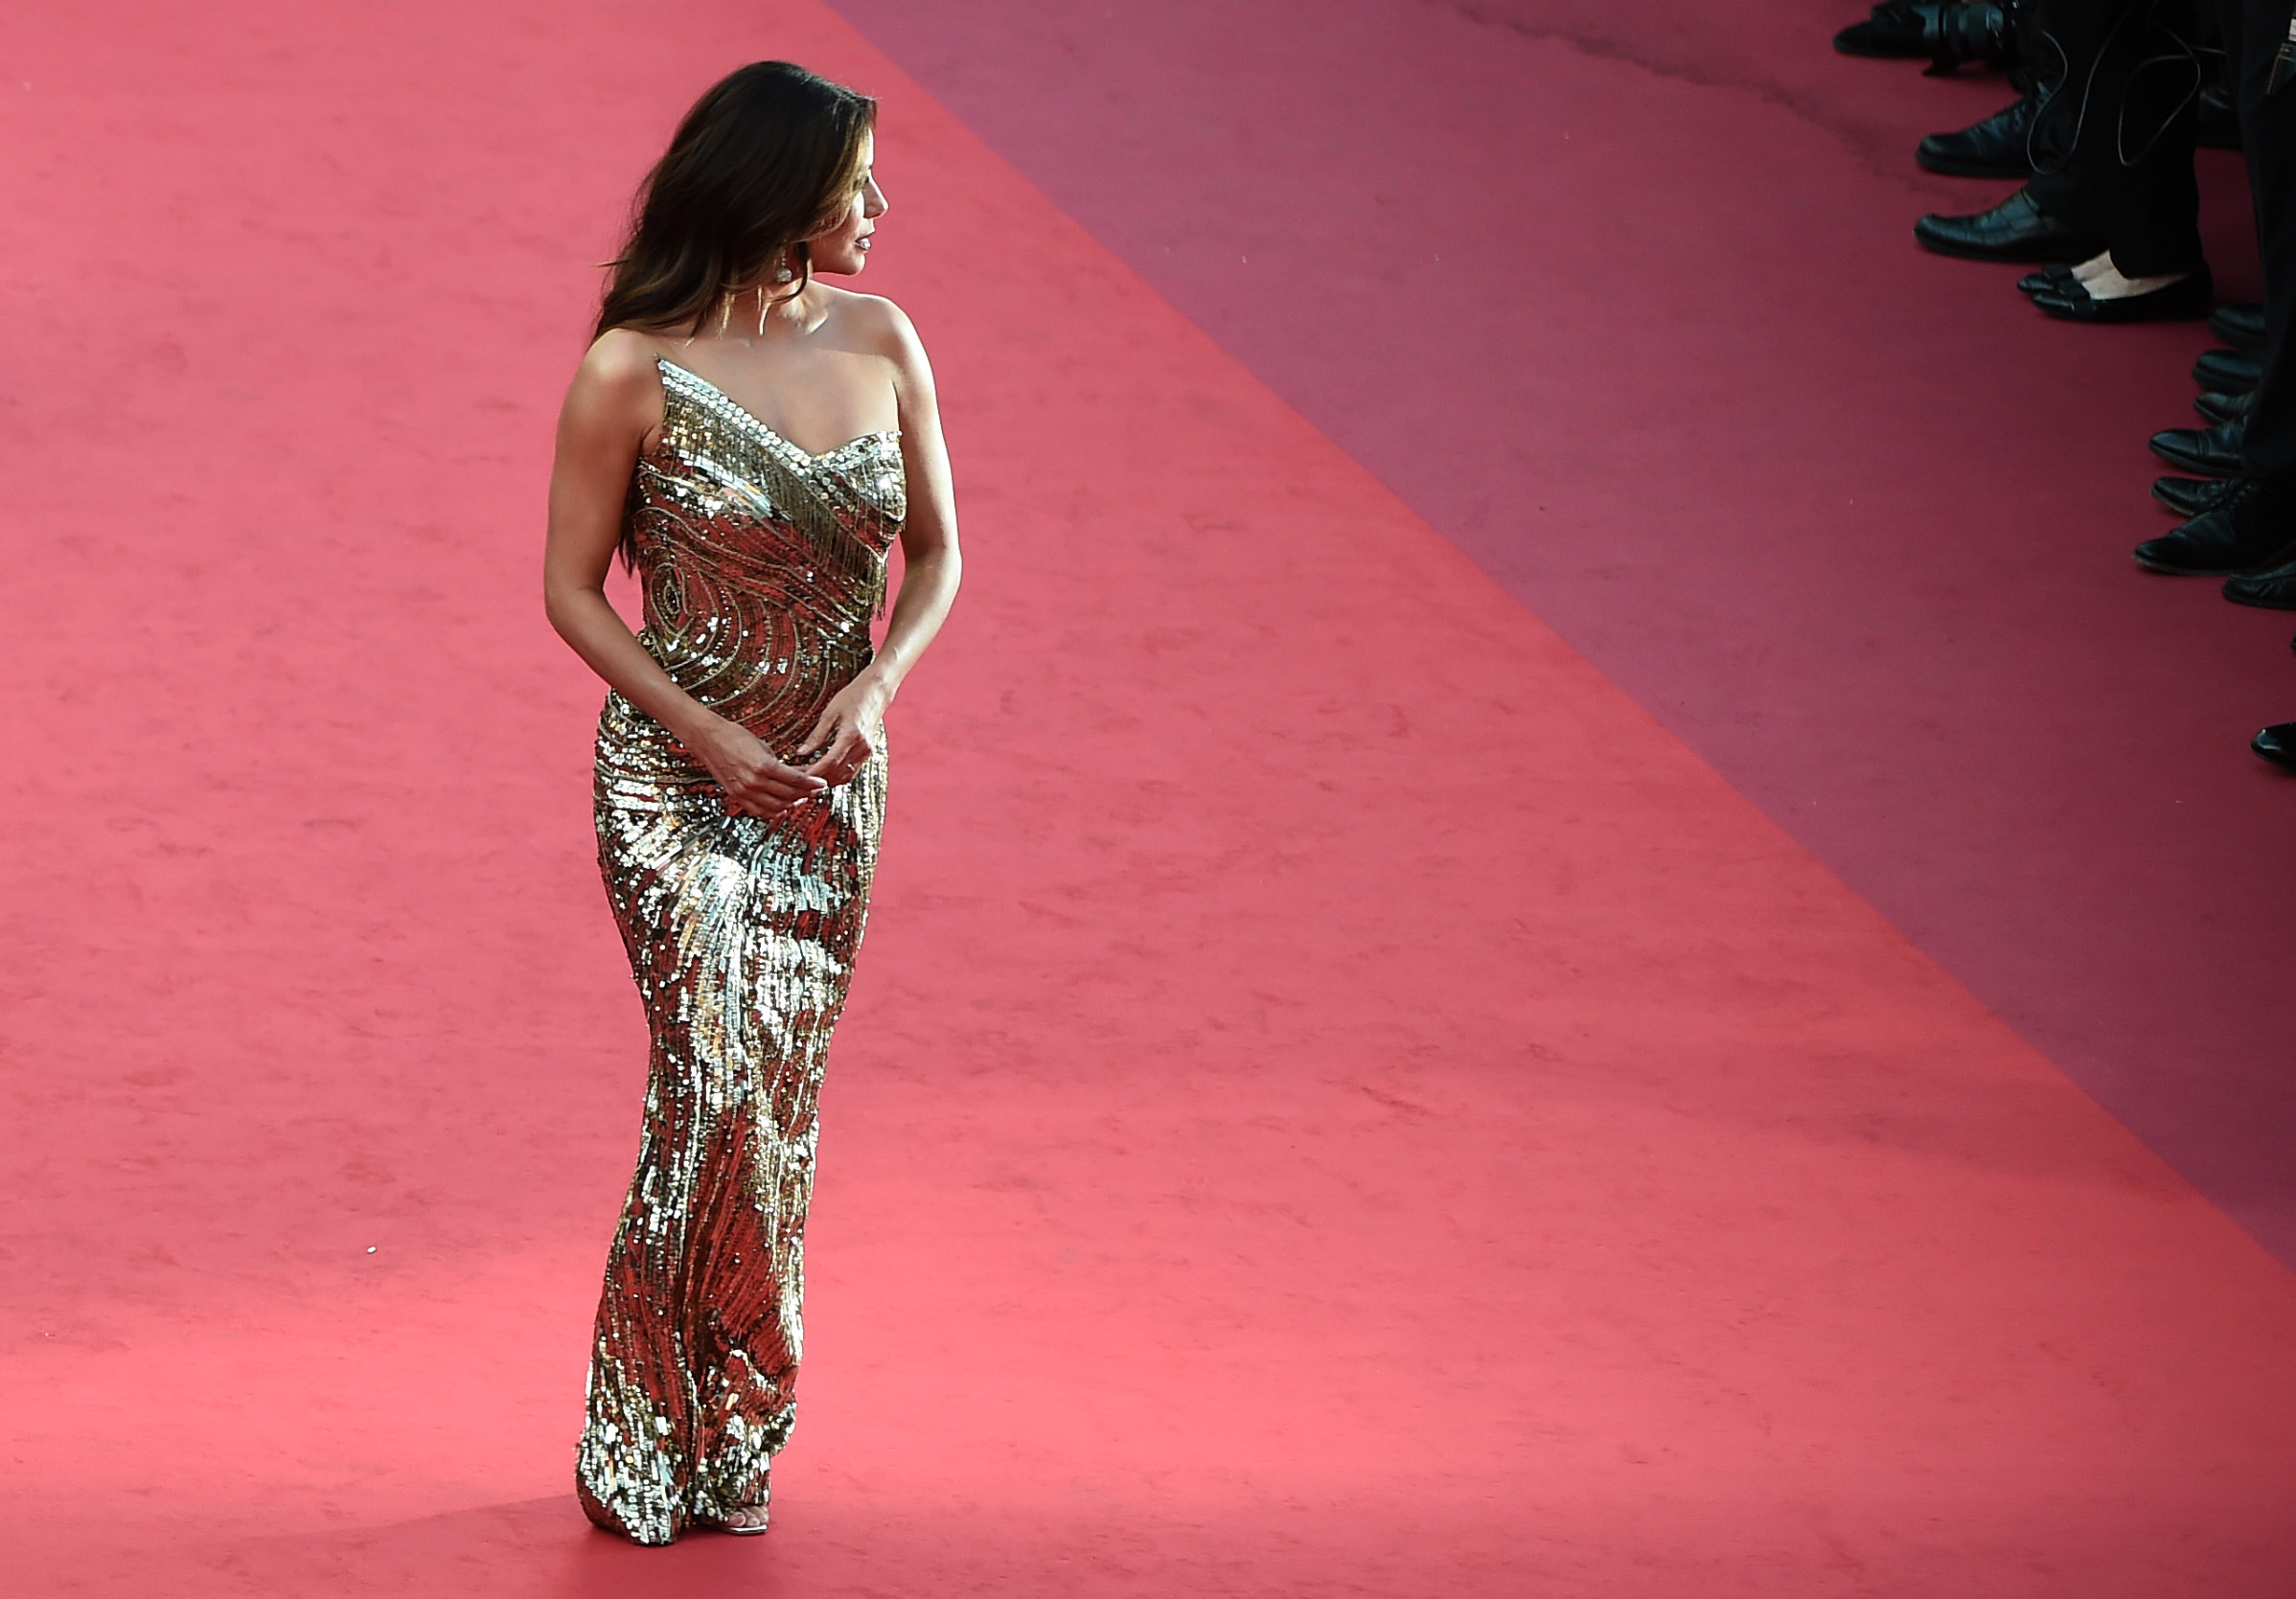 CANNES, FRANCE - MAY 16: Eva Longoria attends the screening of